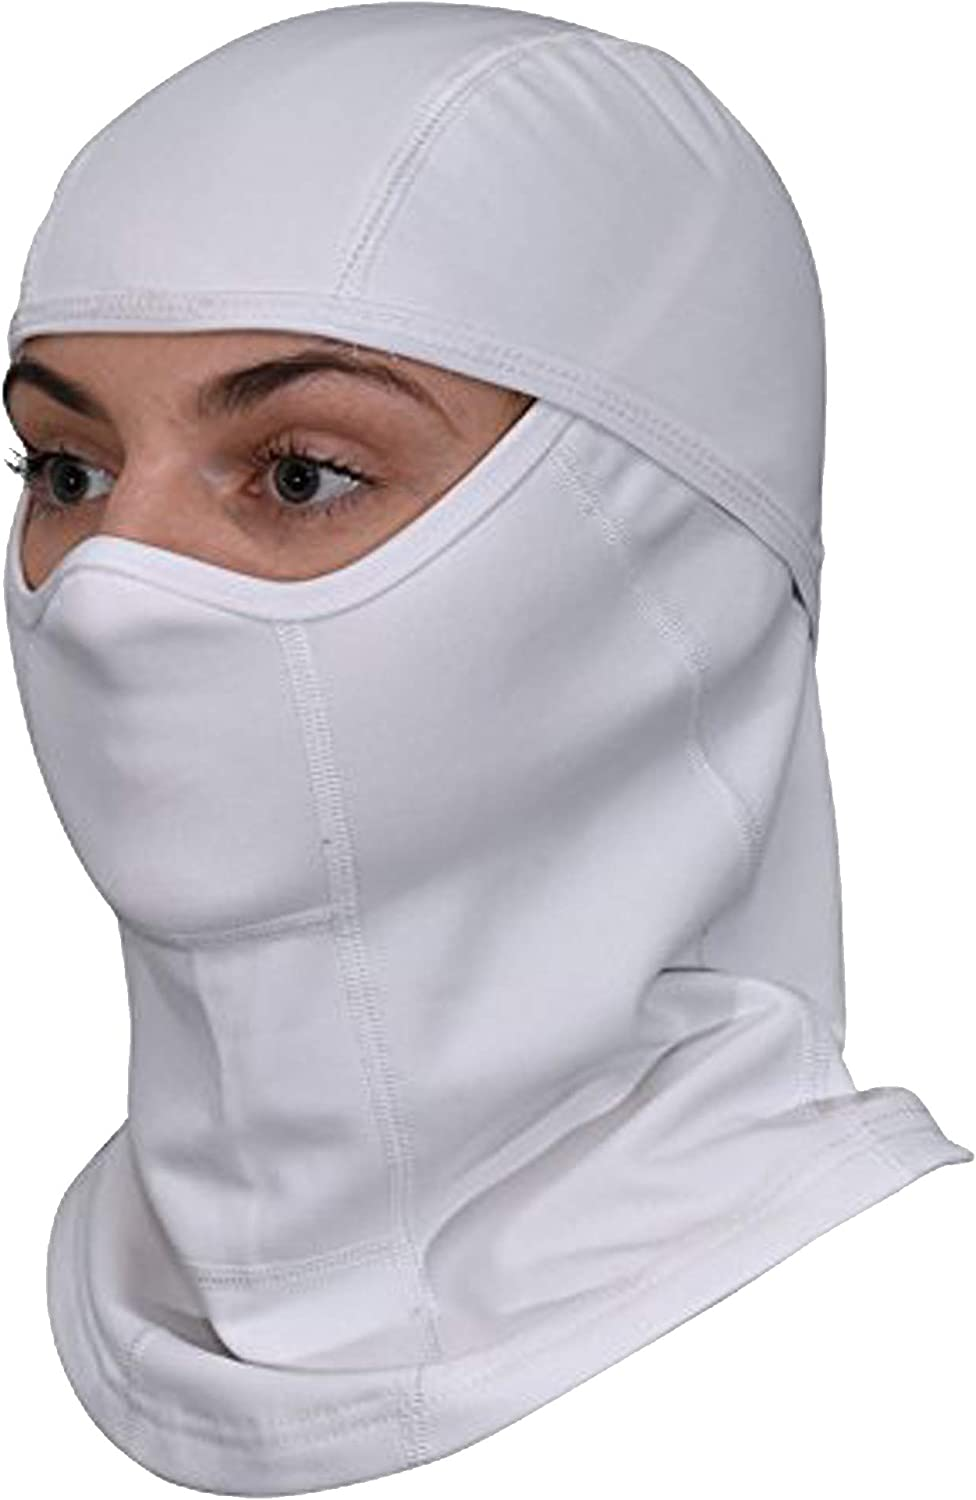 Balaclava Premium Winter Breathable Full Face Ski Mask for Men and Women Skiing, Snowboard, Running, Motorcycle and Cycling (1 Pack, White)